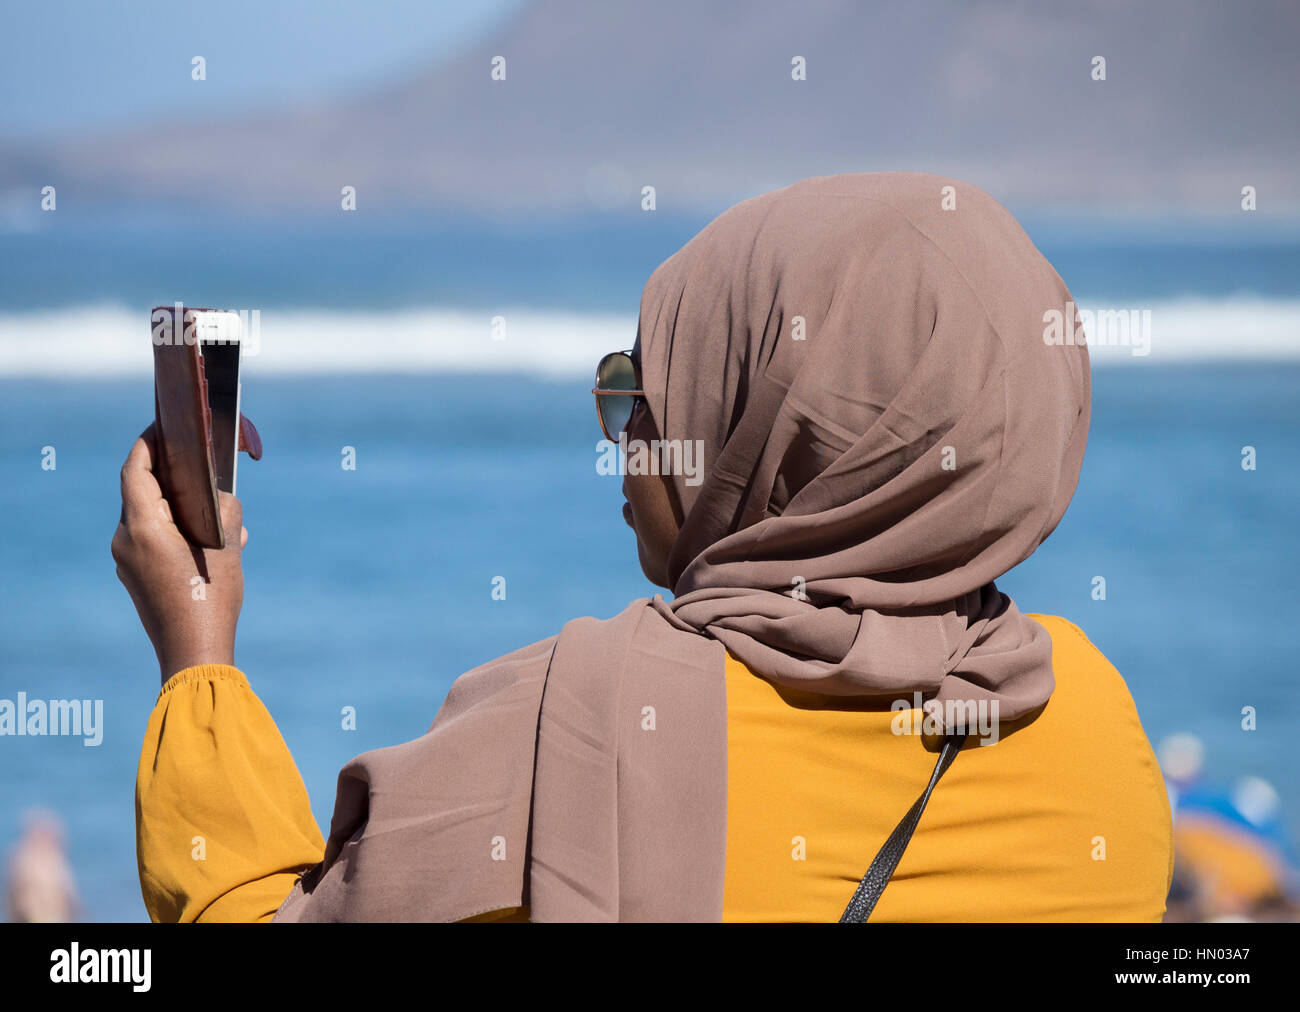 Woman wearing Hijab, headwear worn by Muslim women, taking selfie on beach in Spain - Stock Image